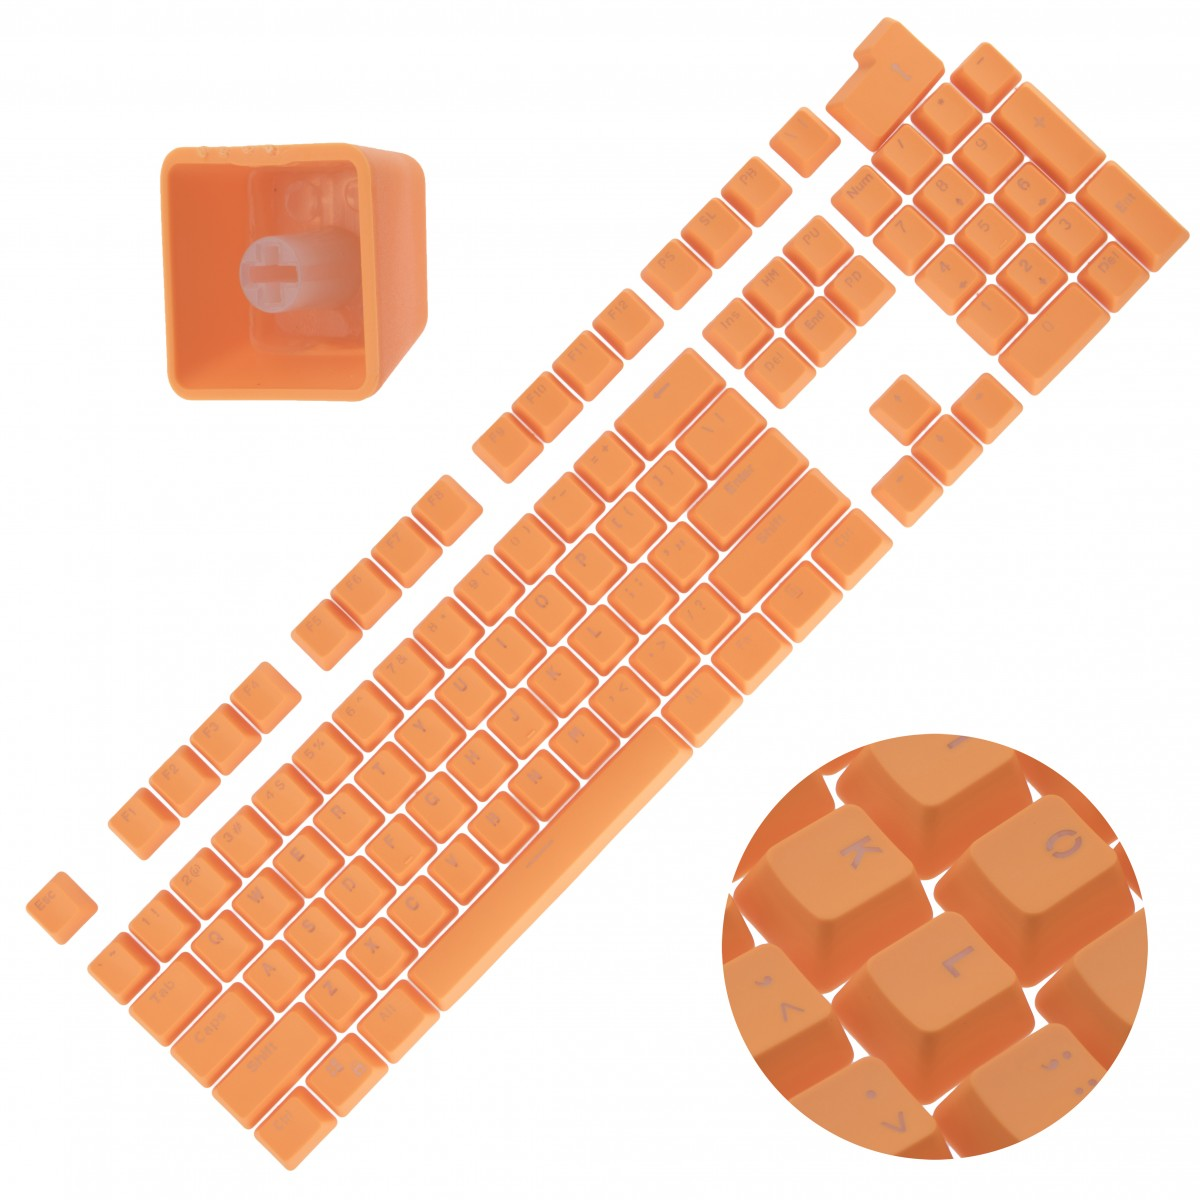 Backlit Double Shot Color Keycaps Cherry MX Mechanical Keyboard Themes Orange